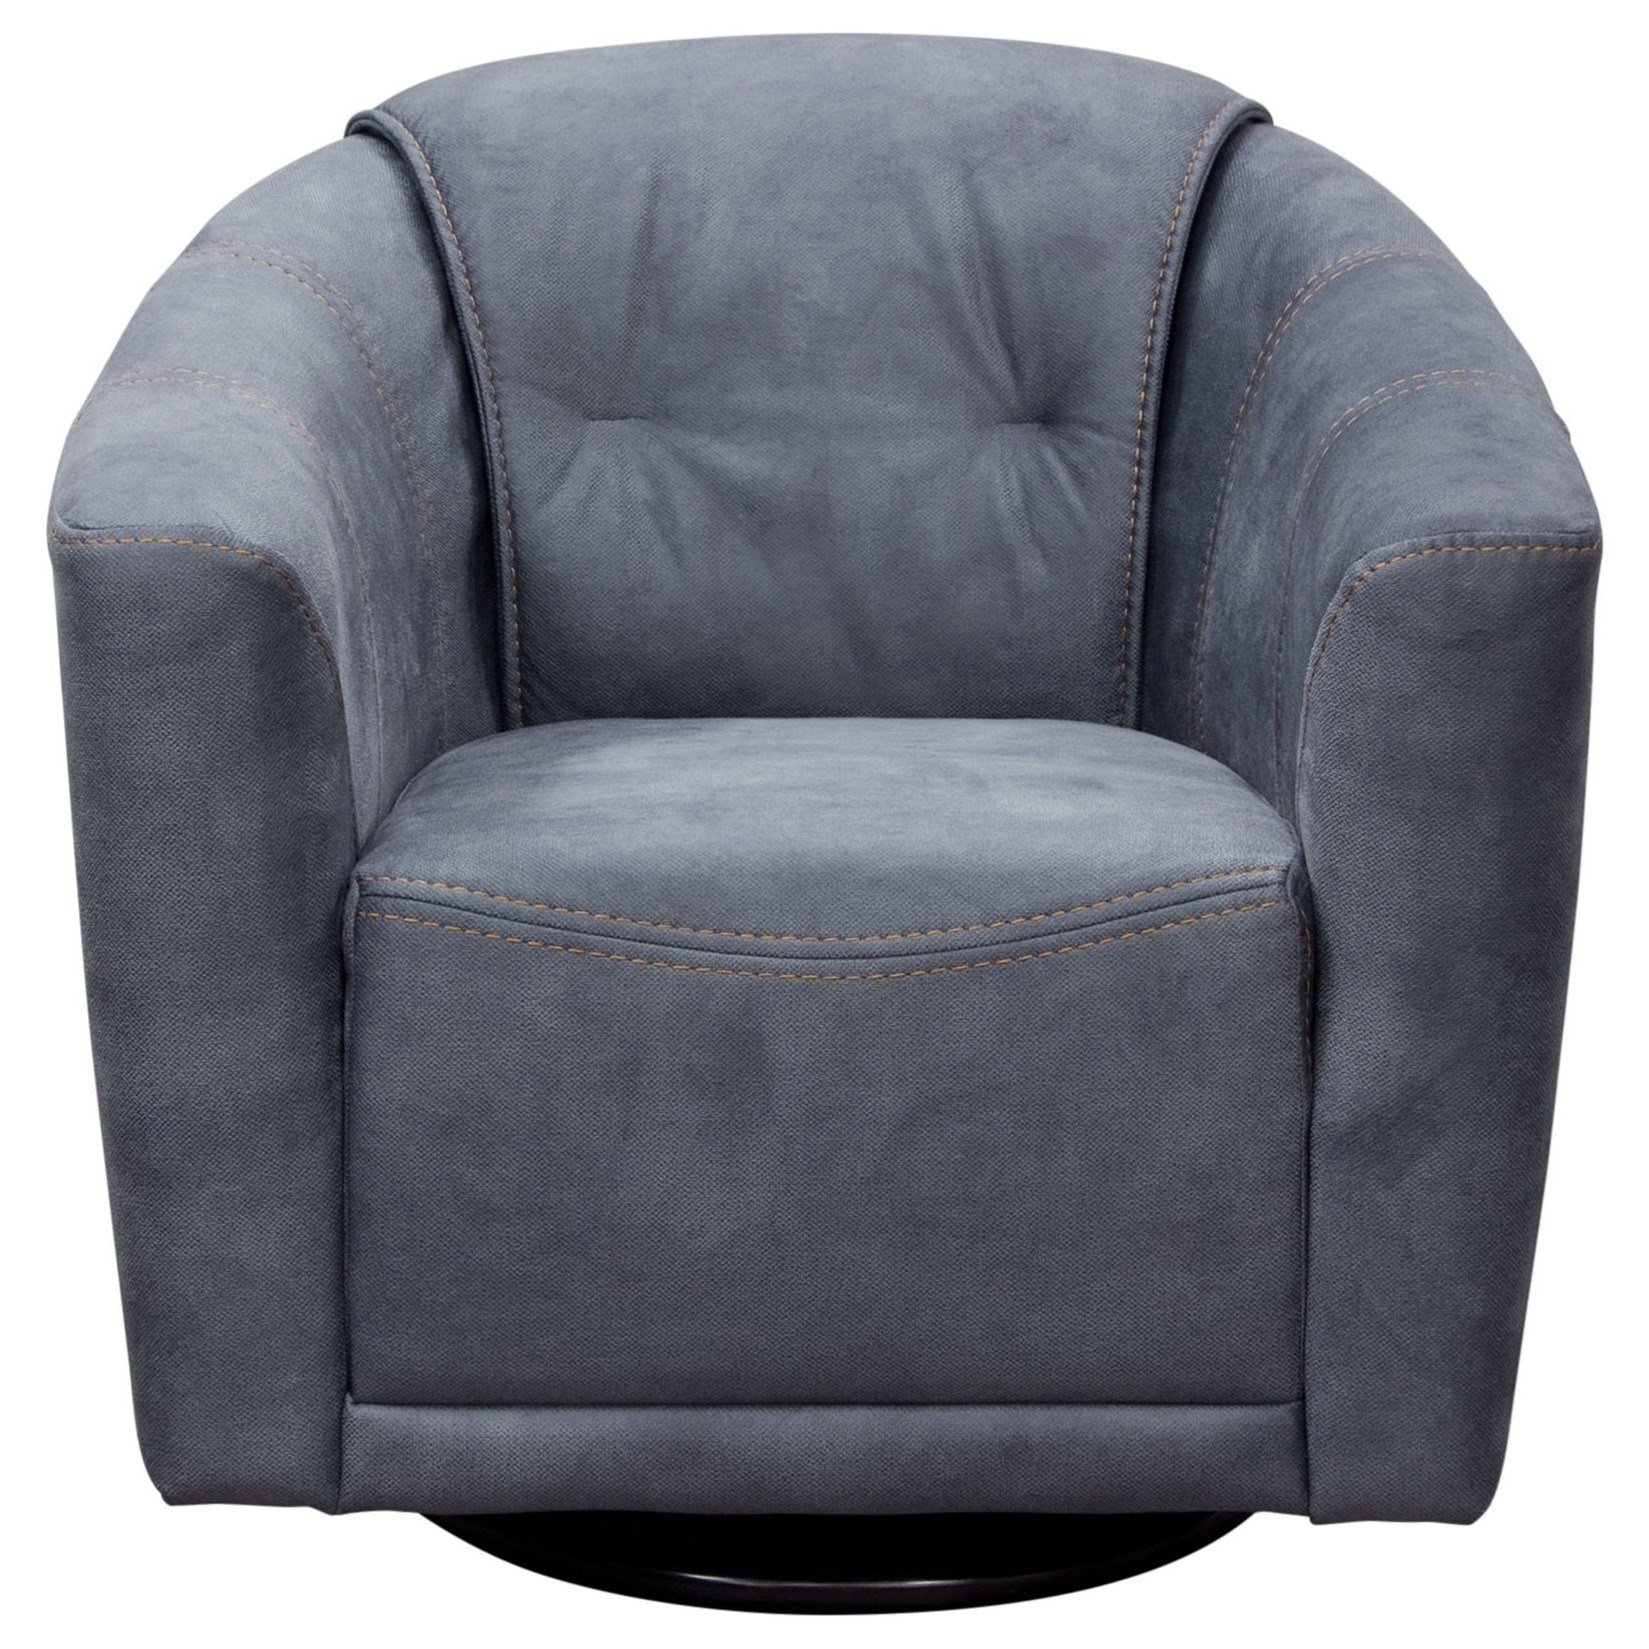 Diamond Sofa Accent Chairs Murphychgr Swivel Accent Chair In Light Intended For Umber Grey Swivel Accent Chairs (Photo 7 of 20)